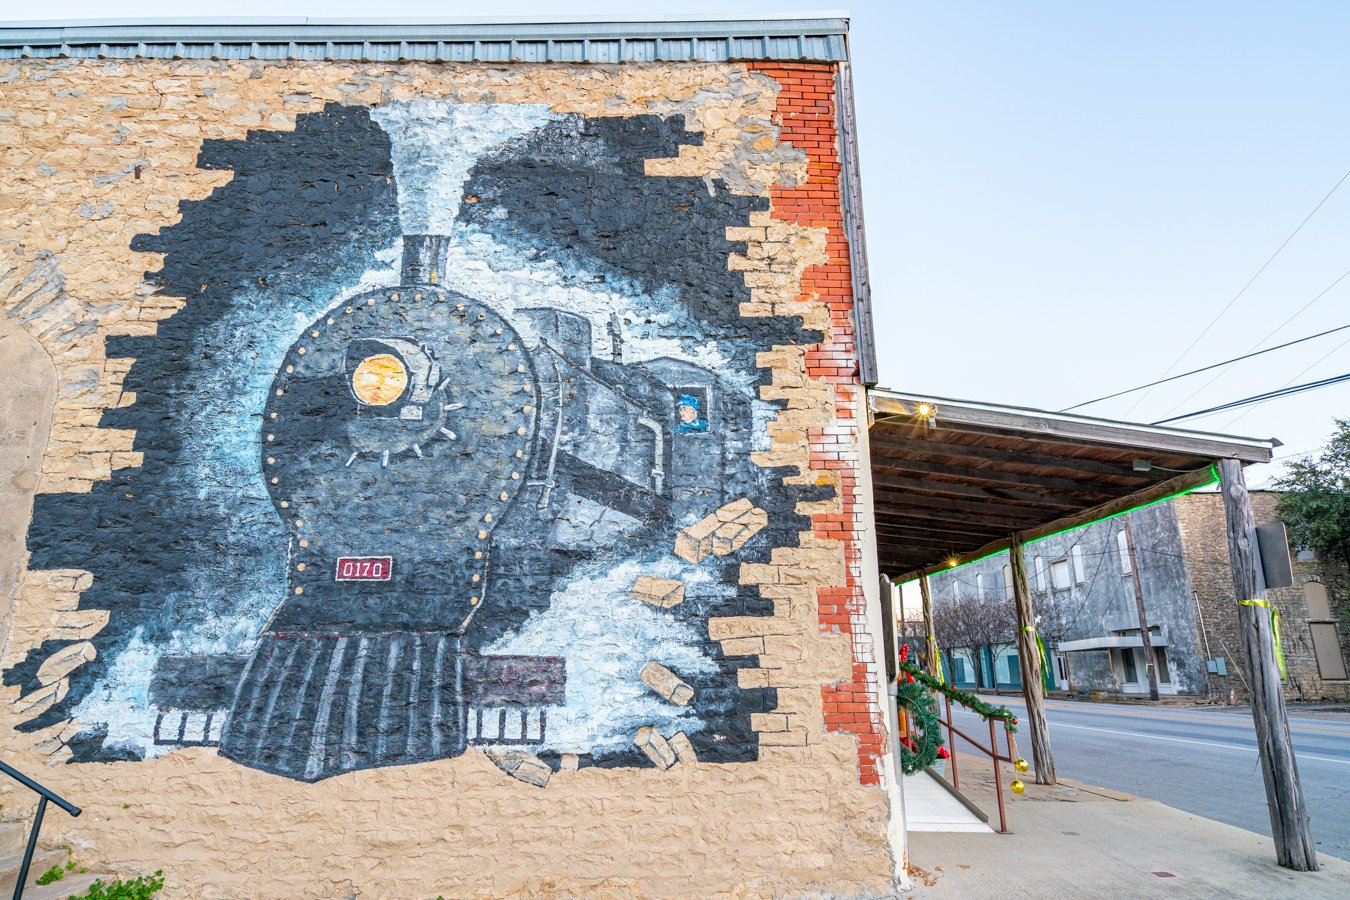 mural of an old fashioned train painted on a brick wall in dublin tx, one of the best day trips from fort worth texas